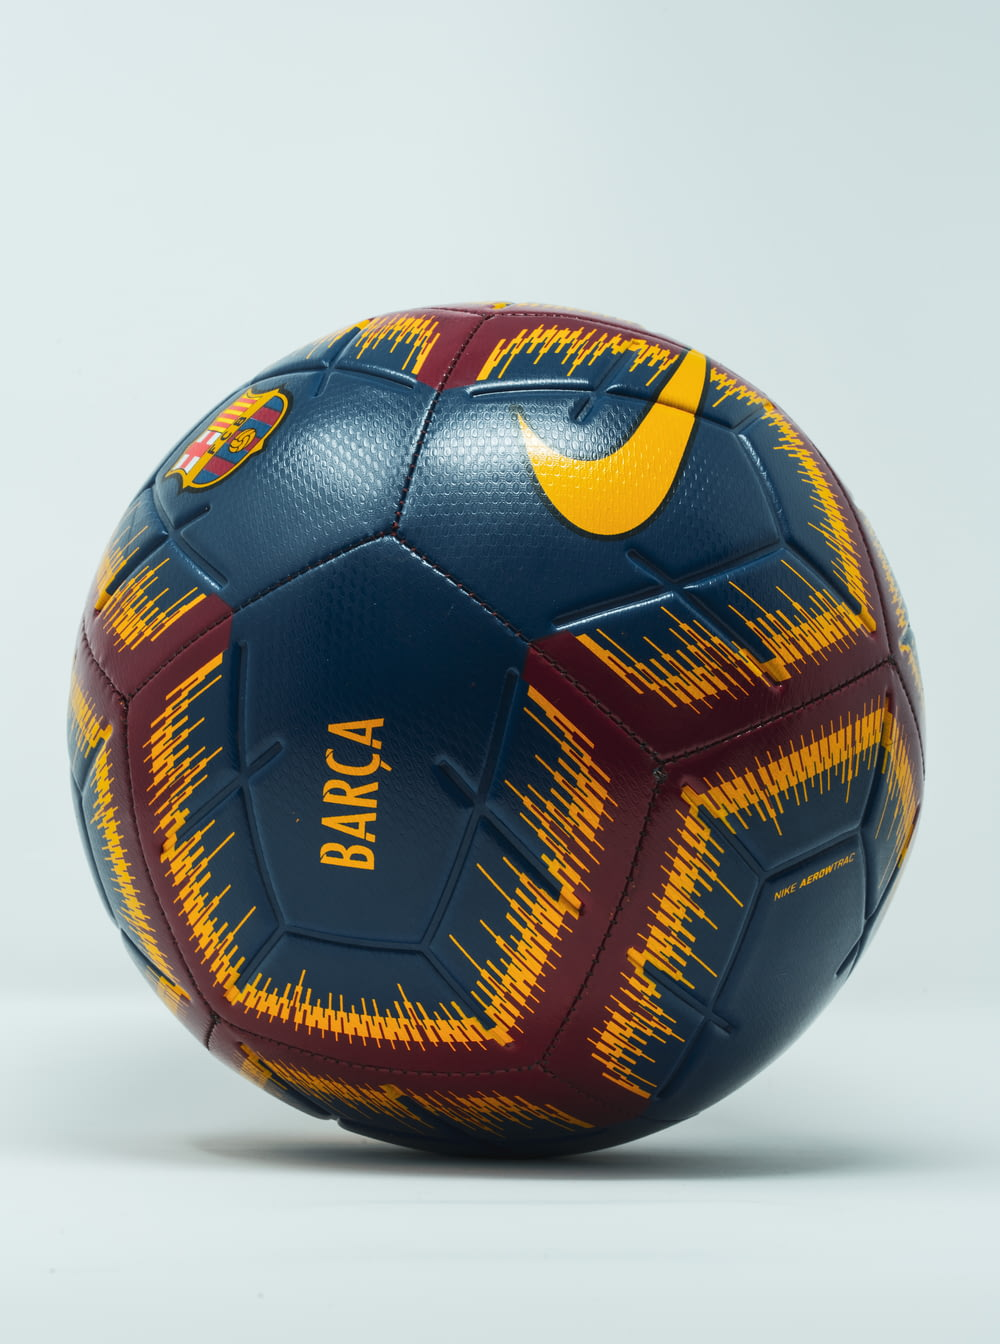 blue, maroon, and yellow Nike soccer ball